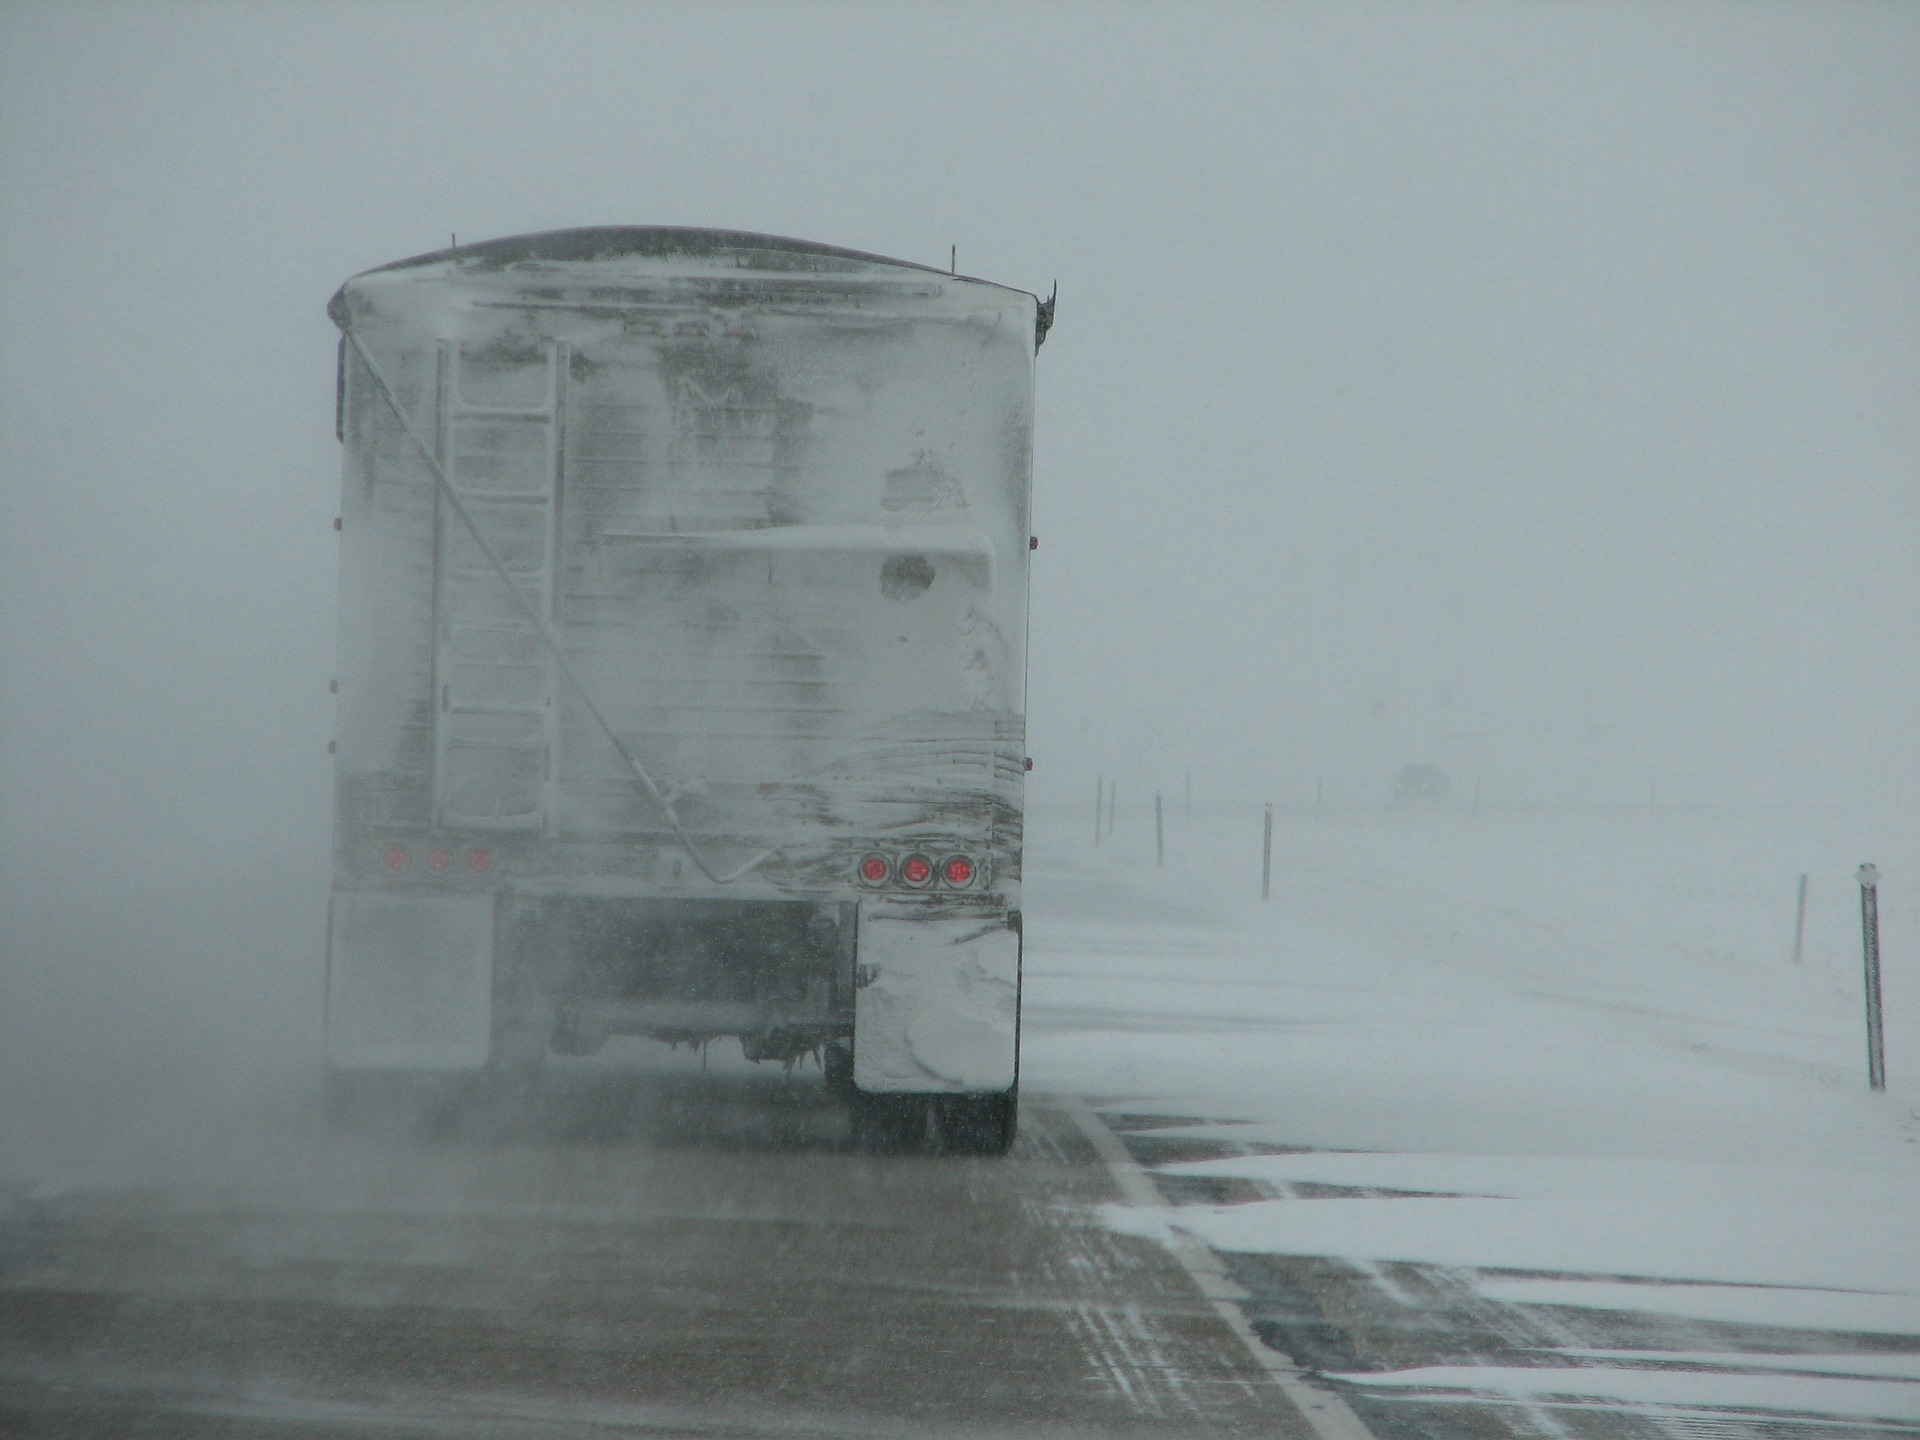 driving-weather-conditions